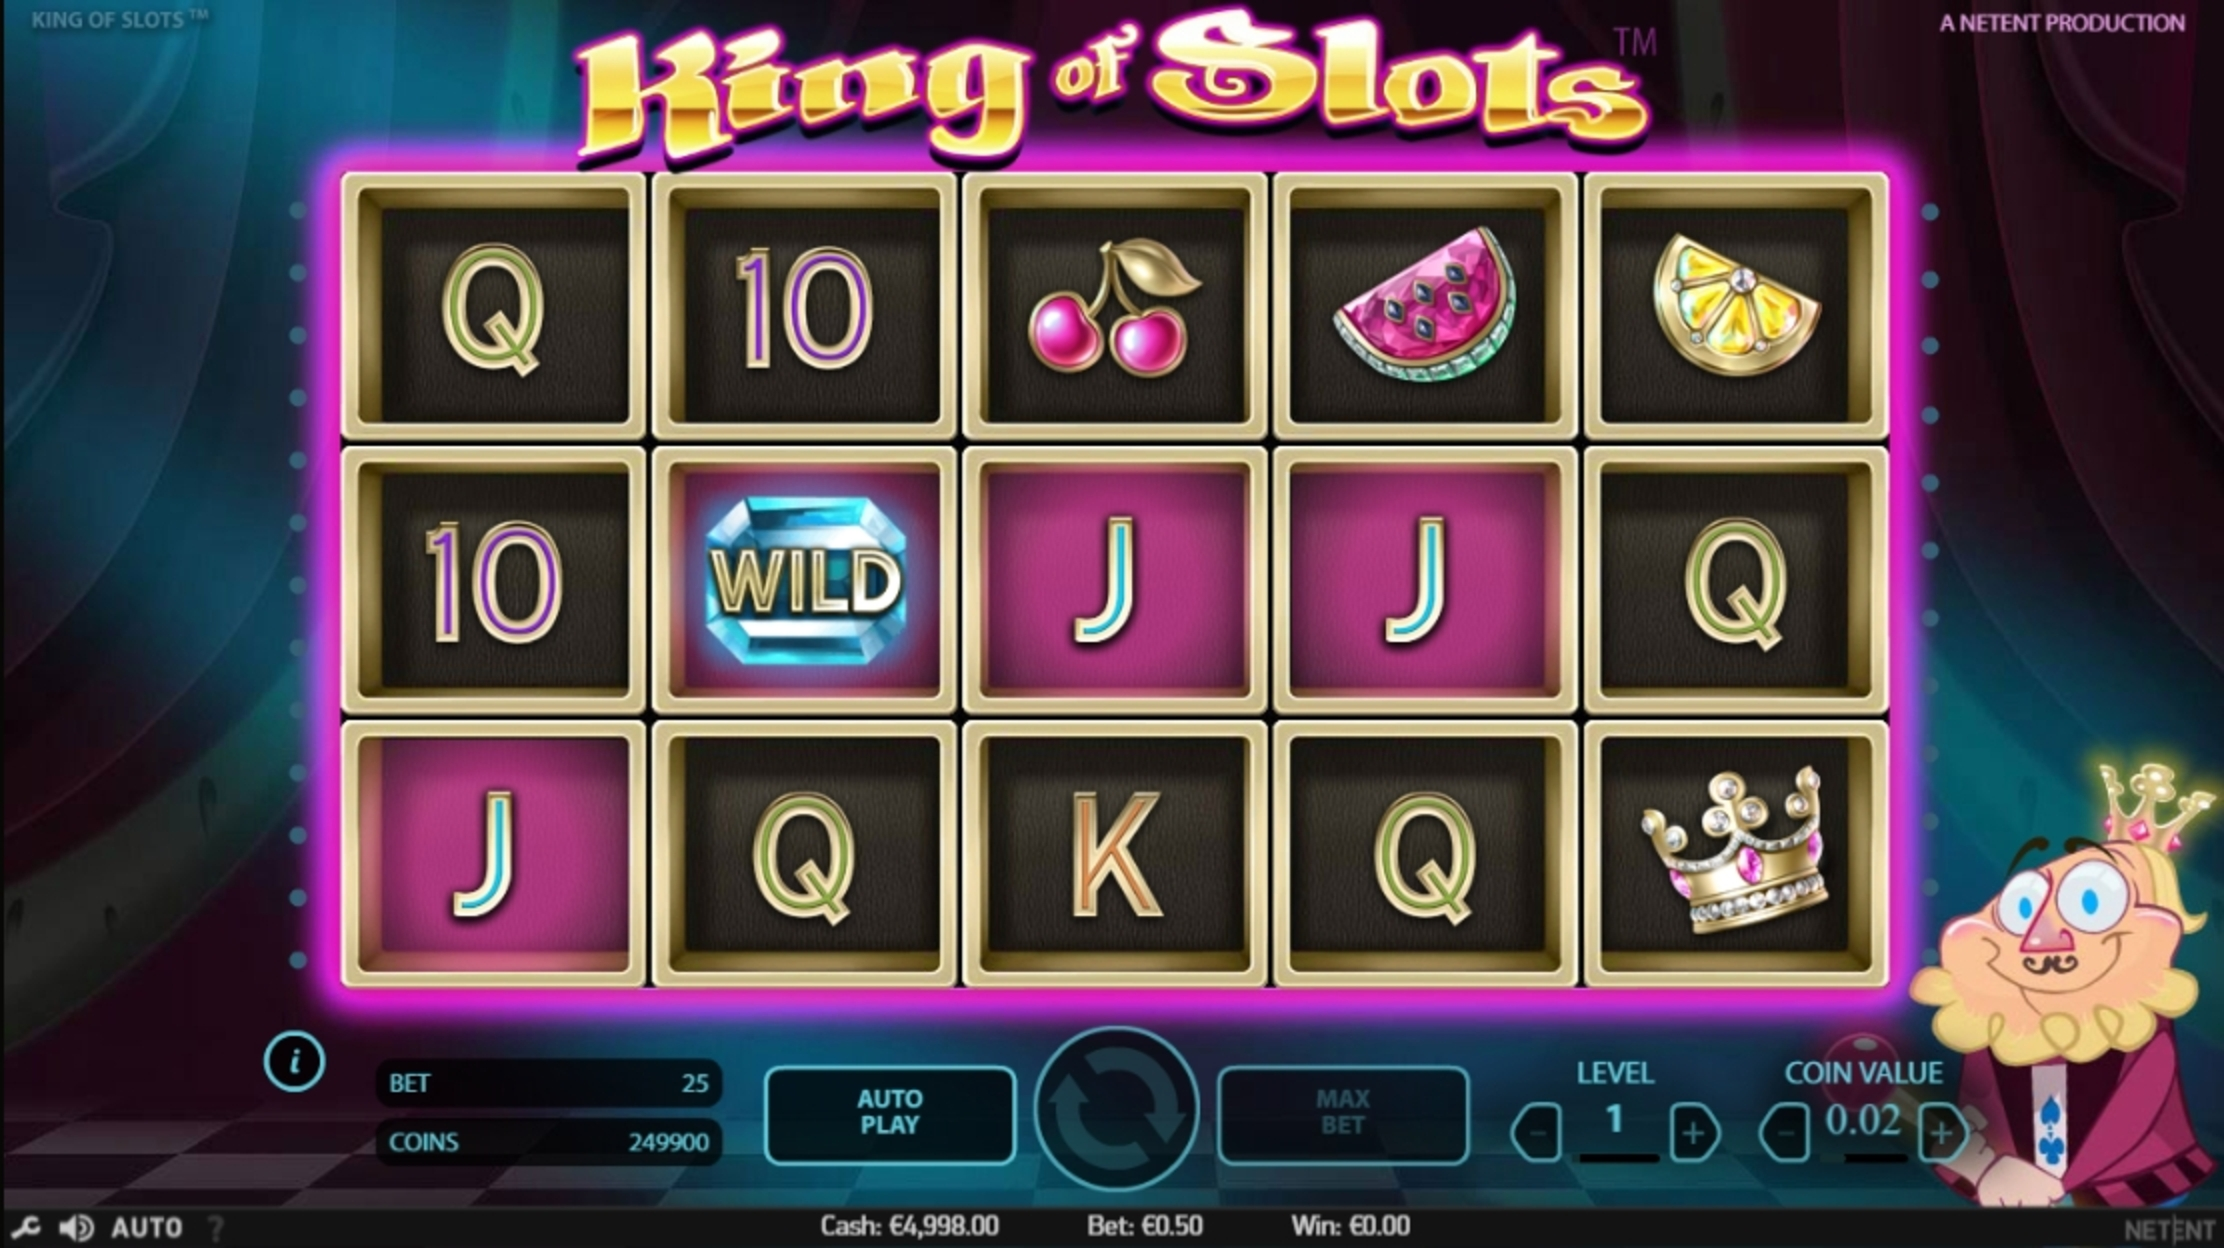 Win Money in King of Slots Free Slot Game by NetEnt